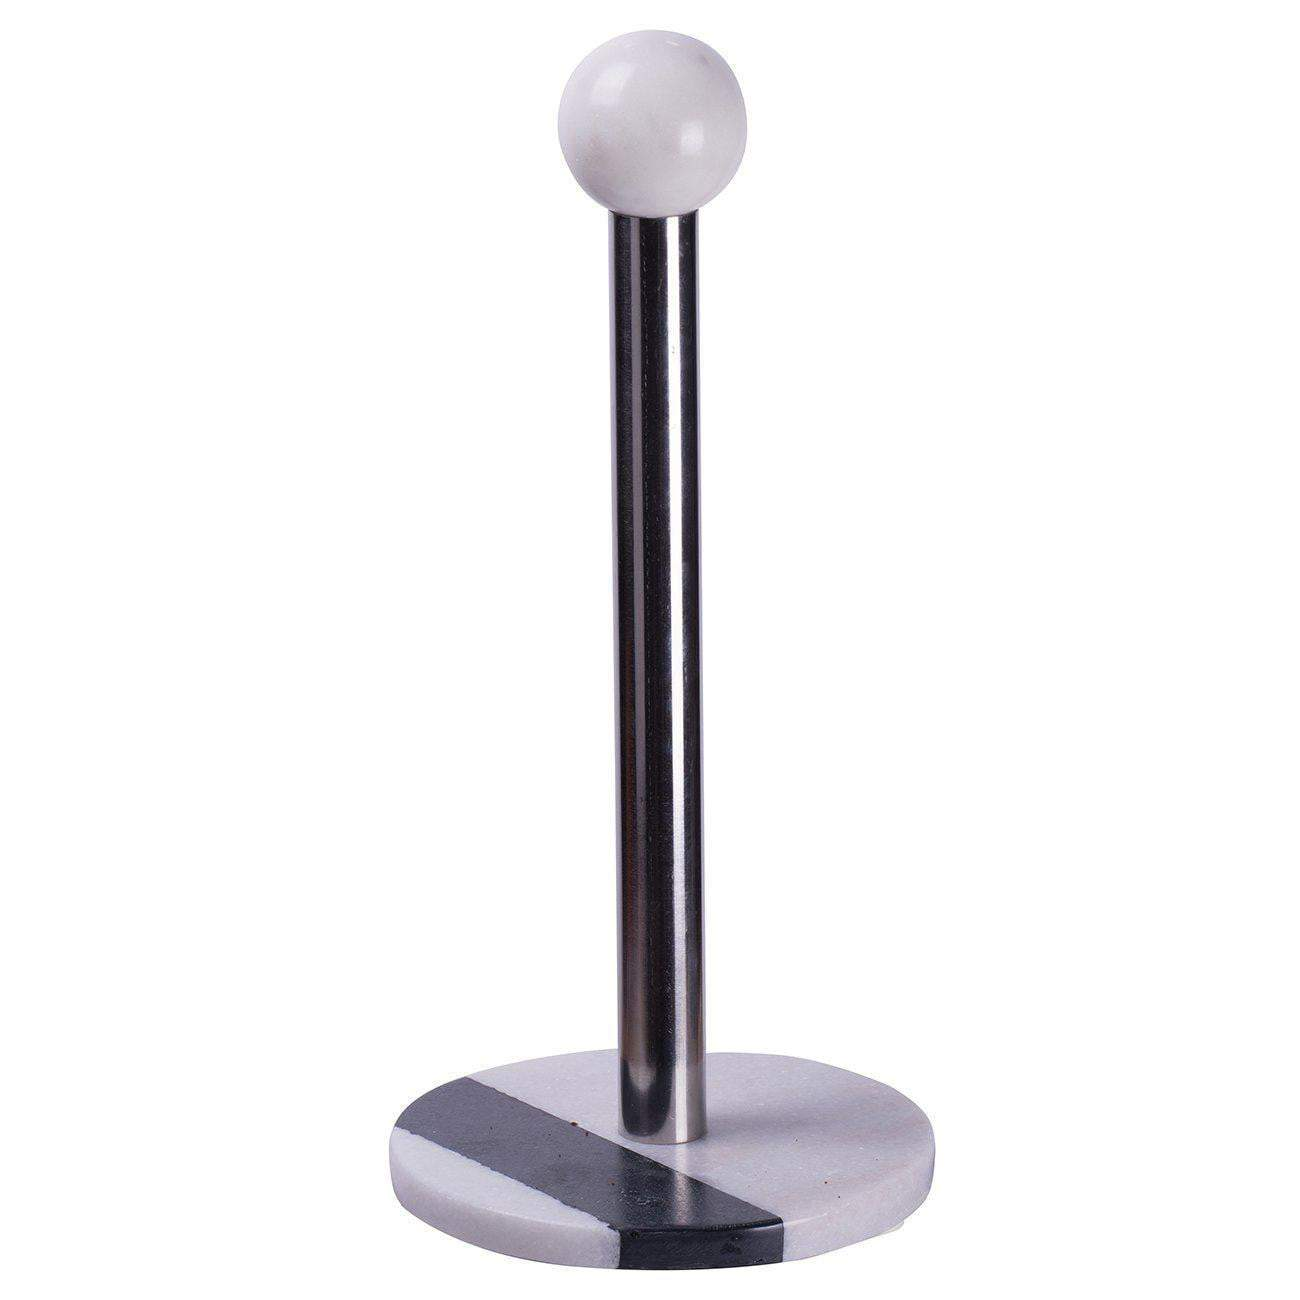 Monochrome Marble Paper Towel Holder-Kitchen Accessories-Parker Gwen